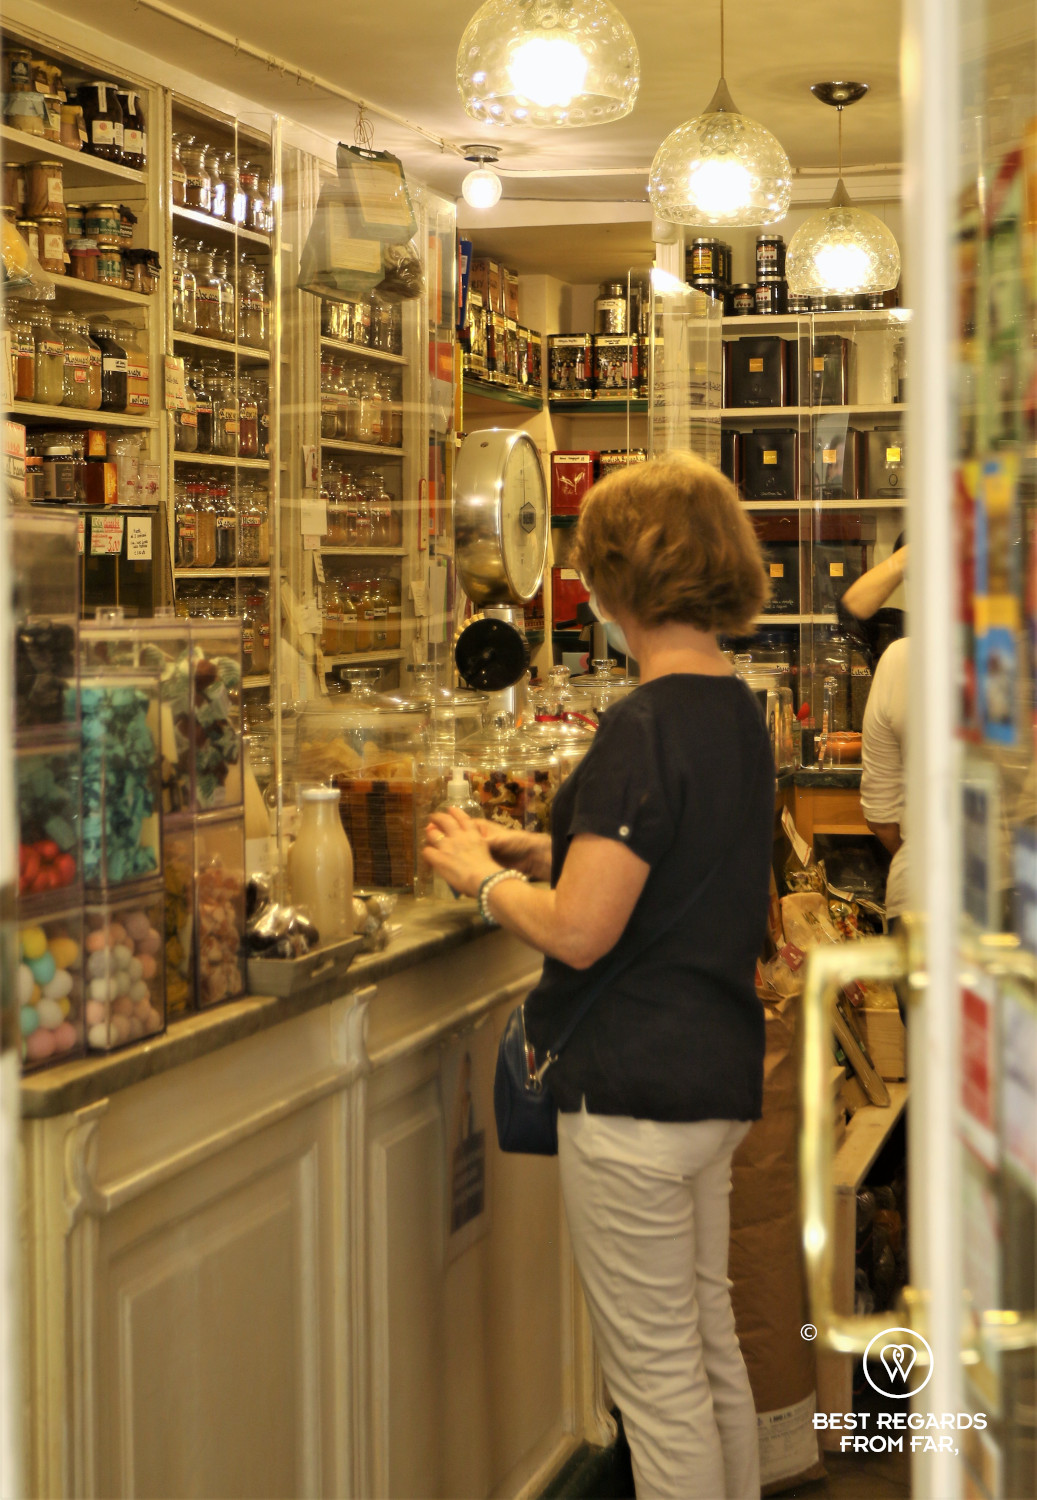 Woman buying spices in an old spice store in Genoa, Italy